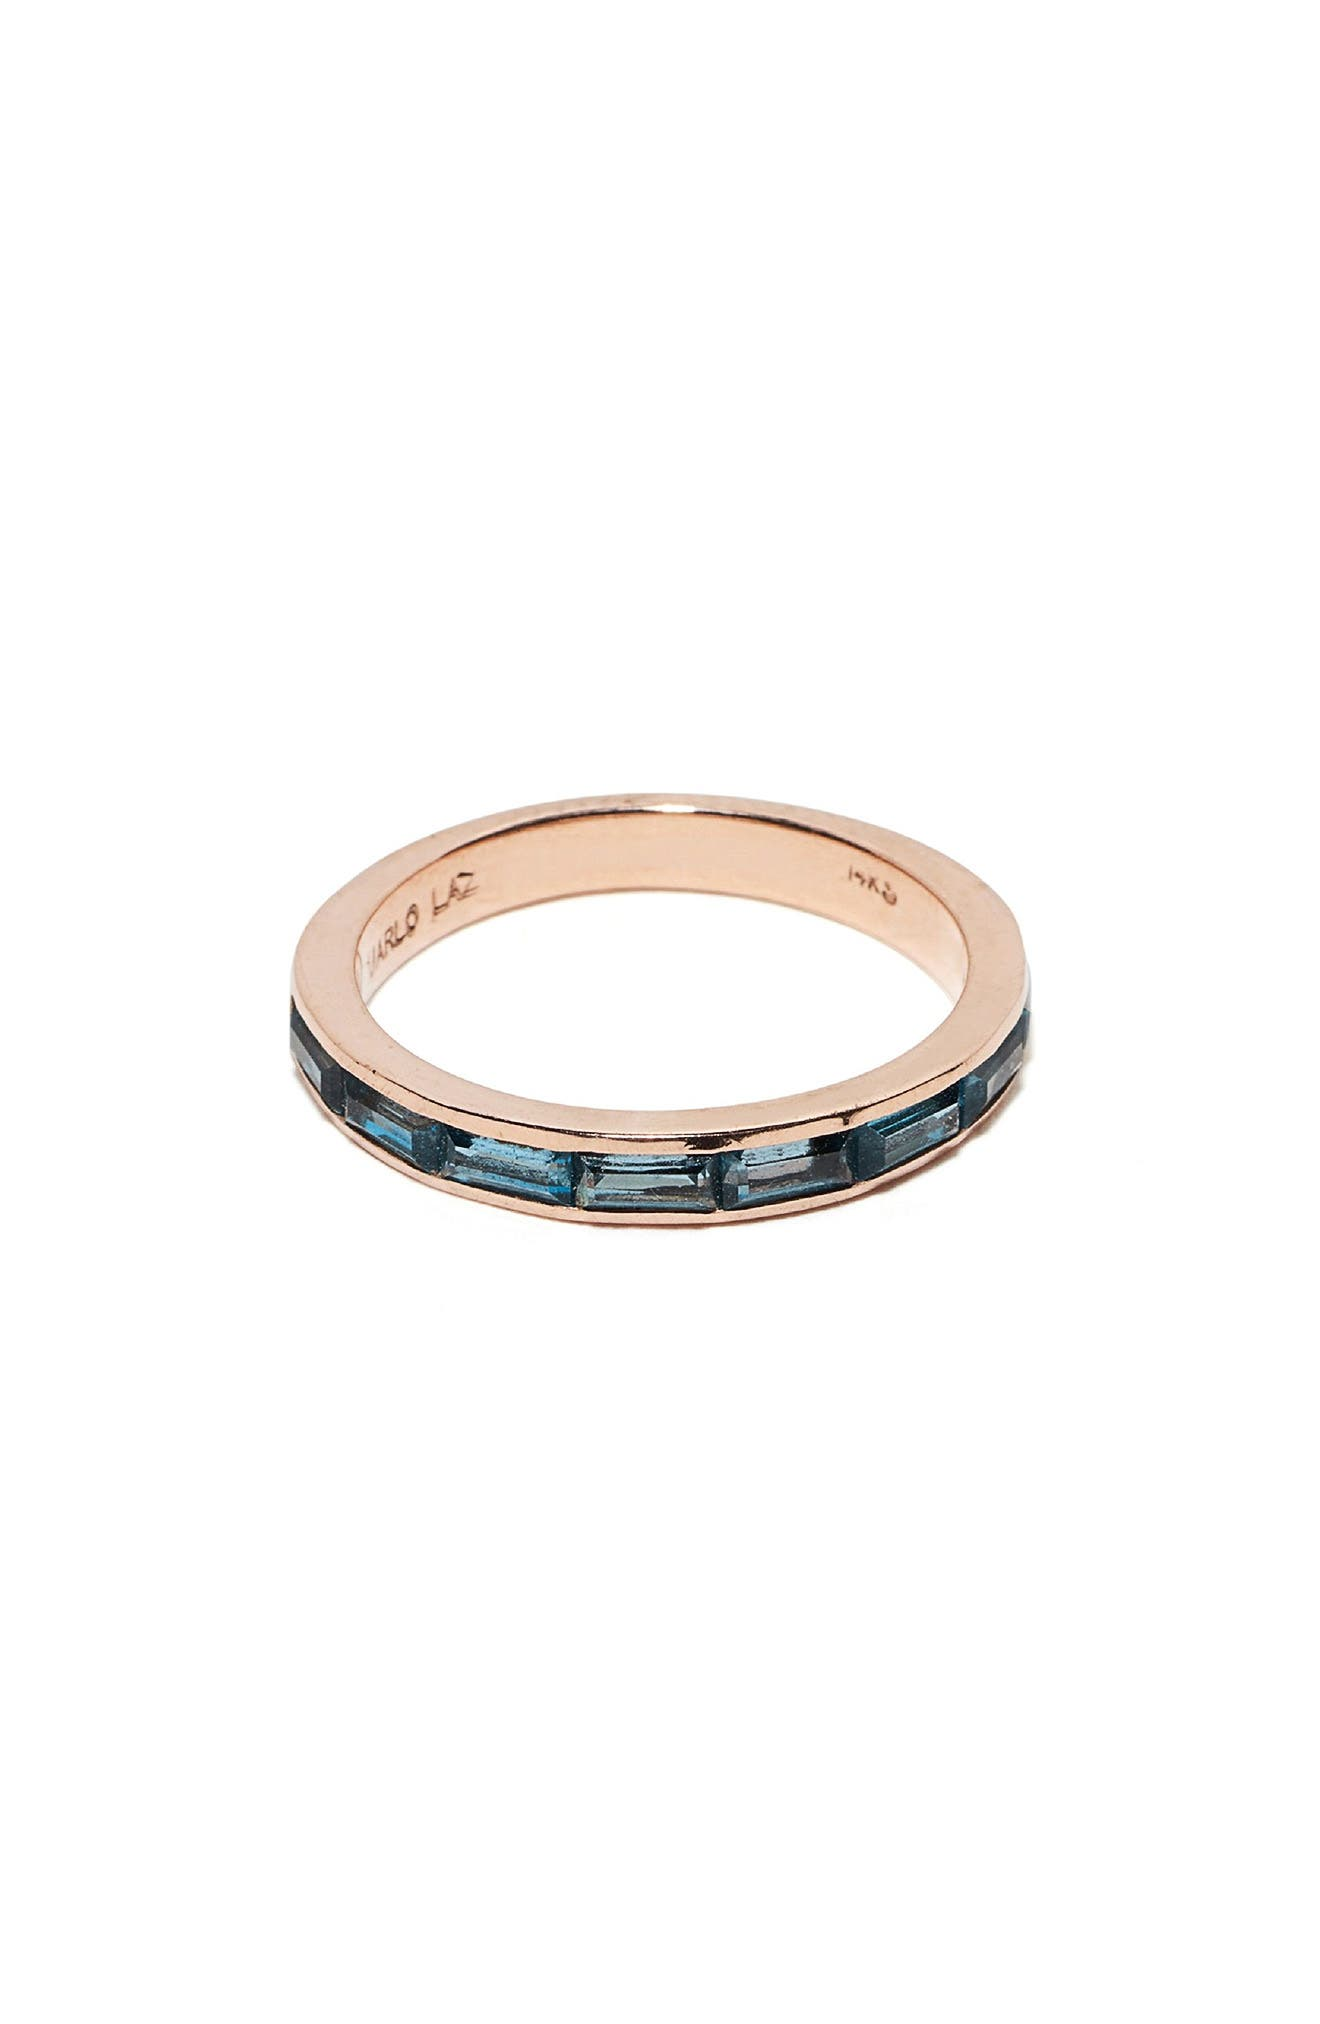 Blue Topaz Baguette Ring,                             Main thumbnail 1, color,                             Rose Gold